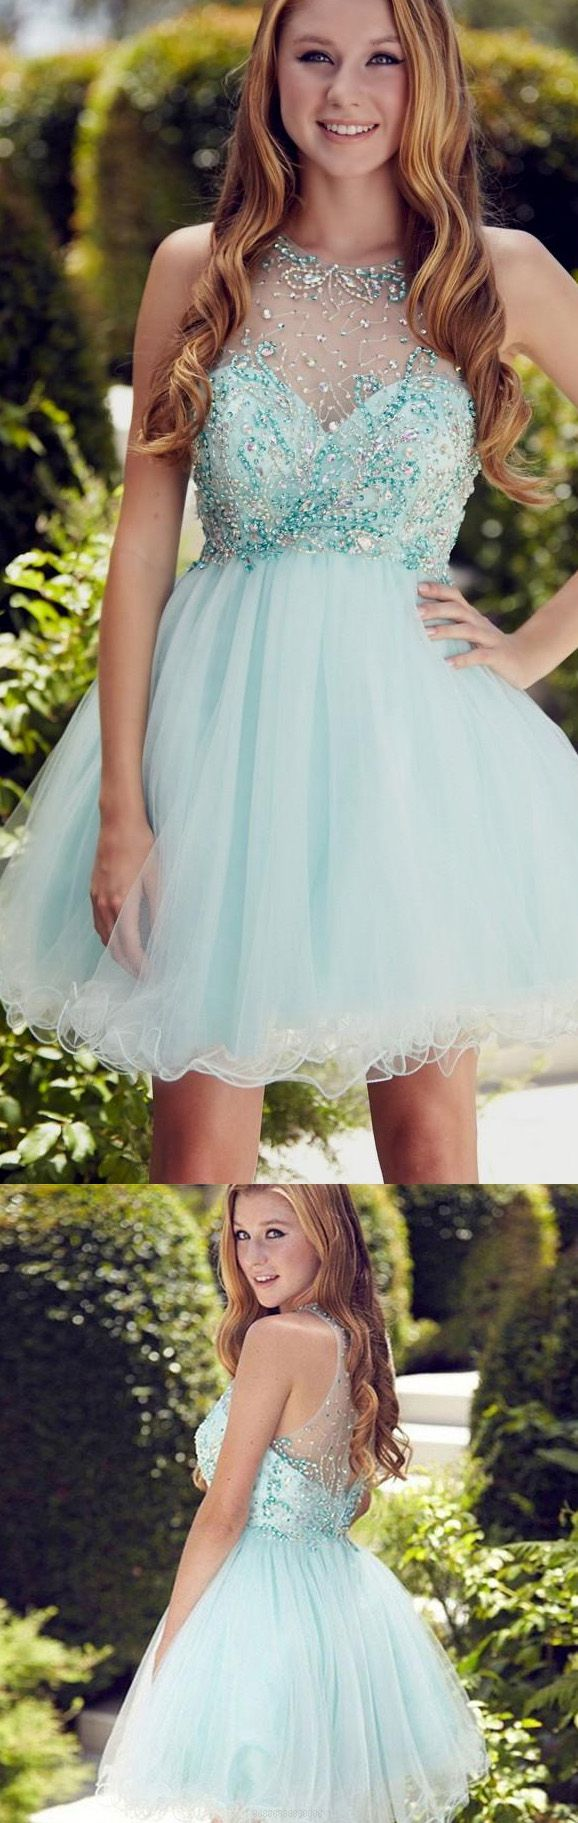 160 best party dresses images on Pinterest | Outfit ideas, Summer ...